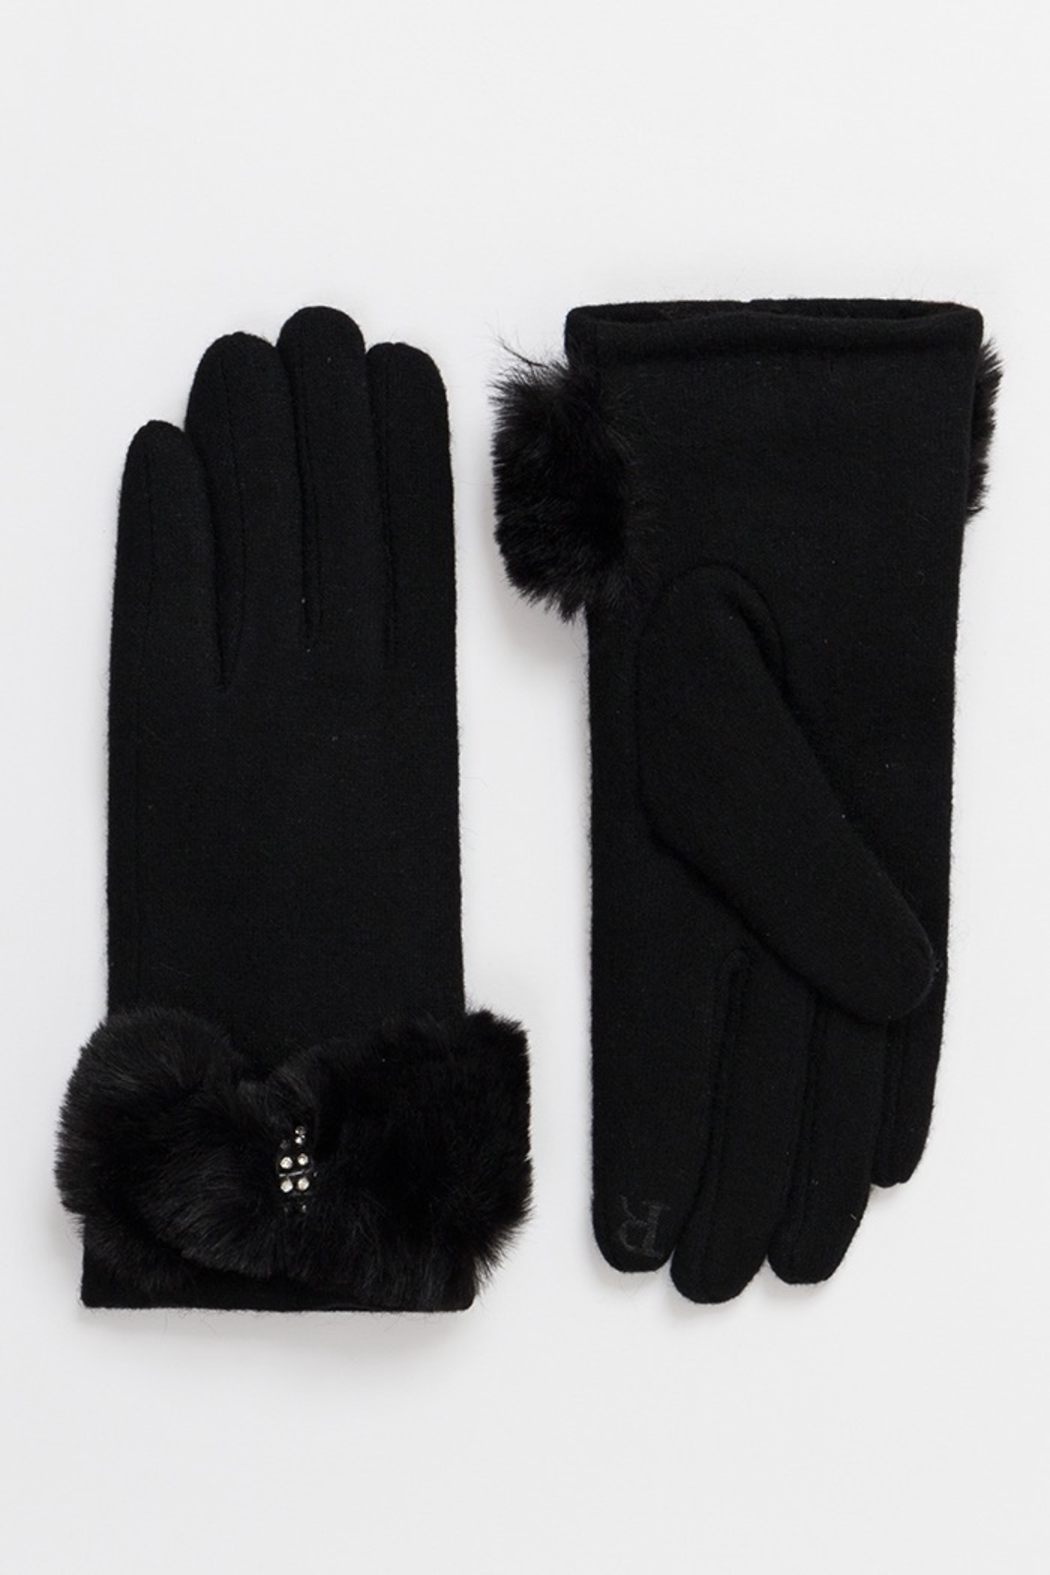 Pia Rossini HELENA GLOVES - Front Cropped Image